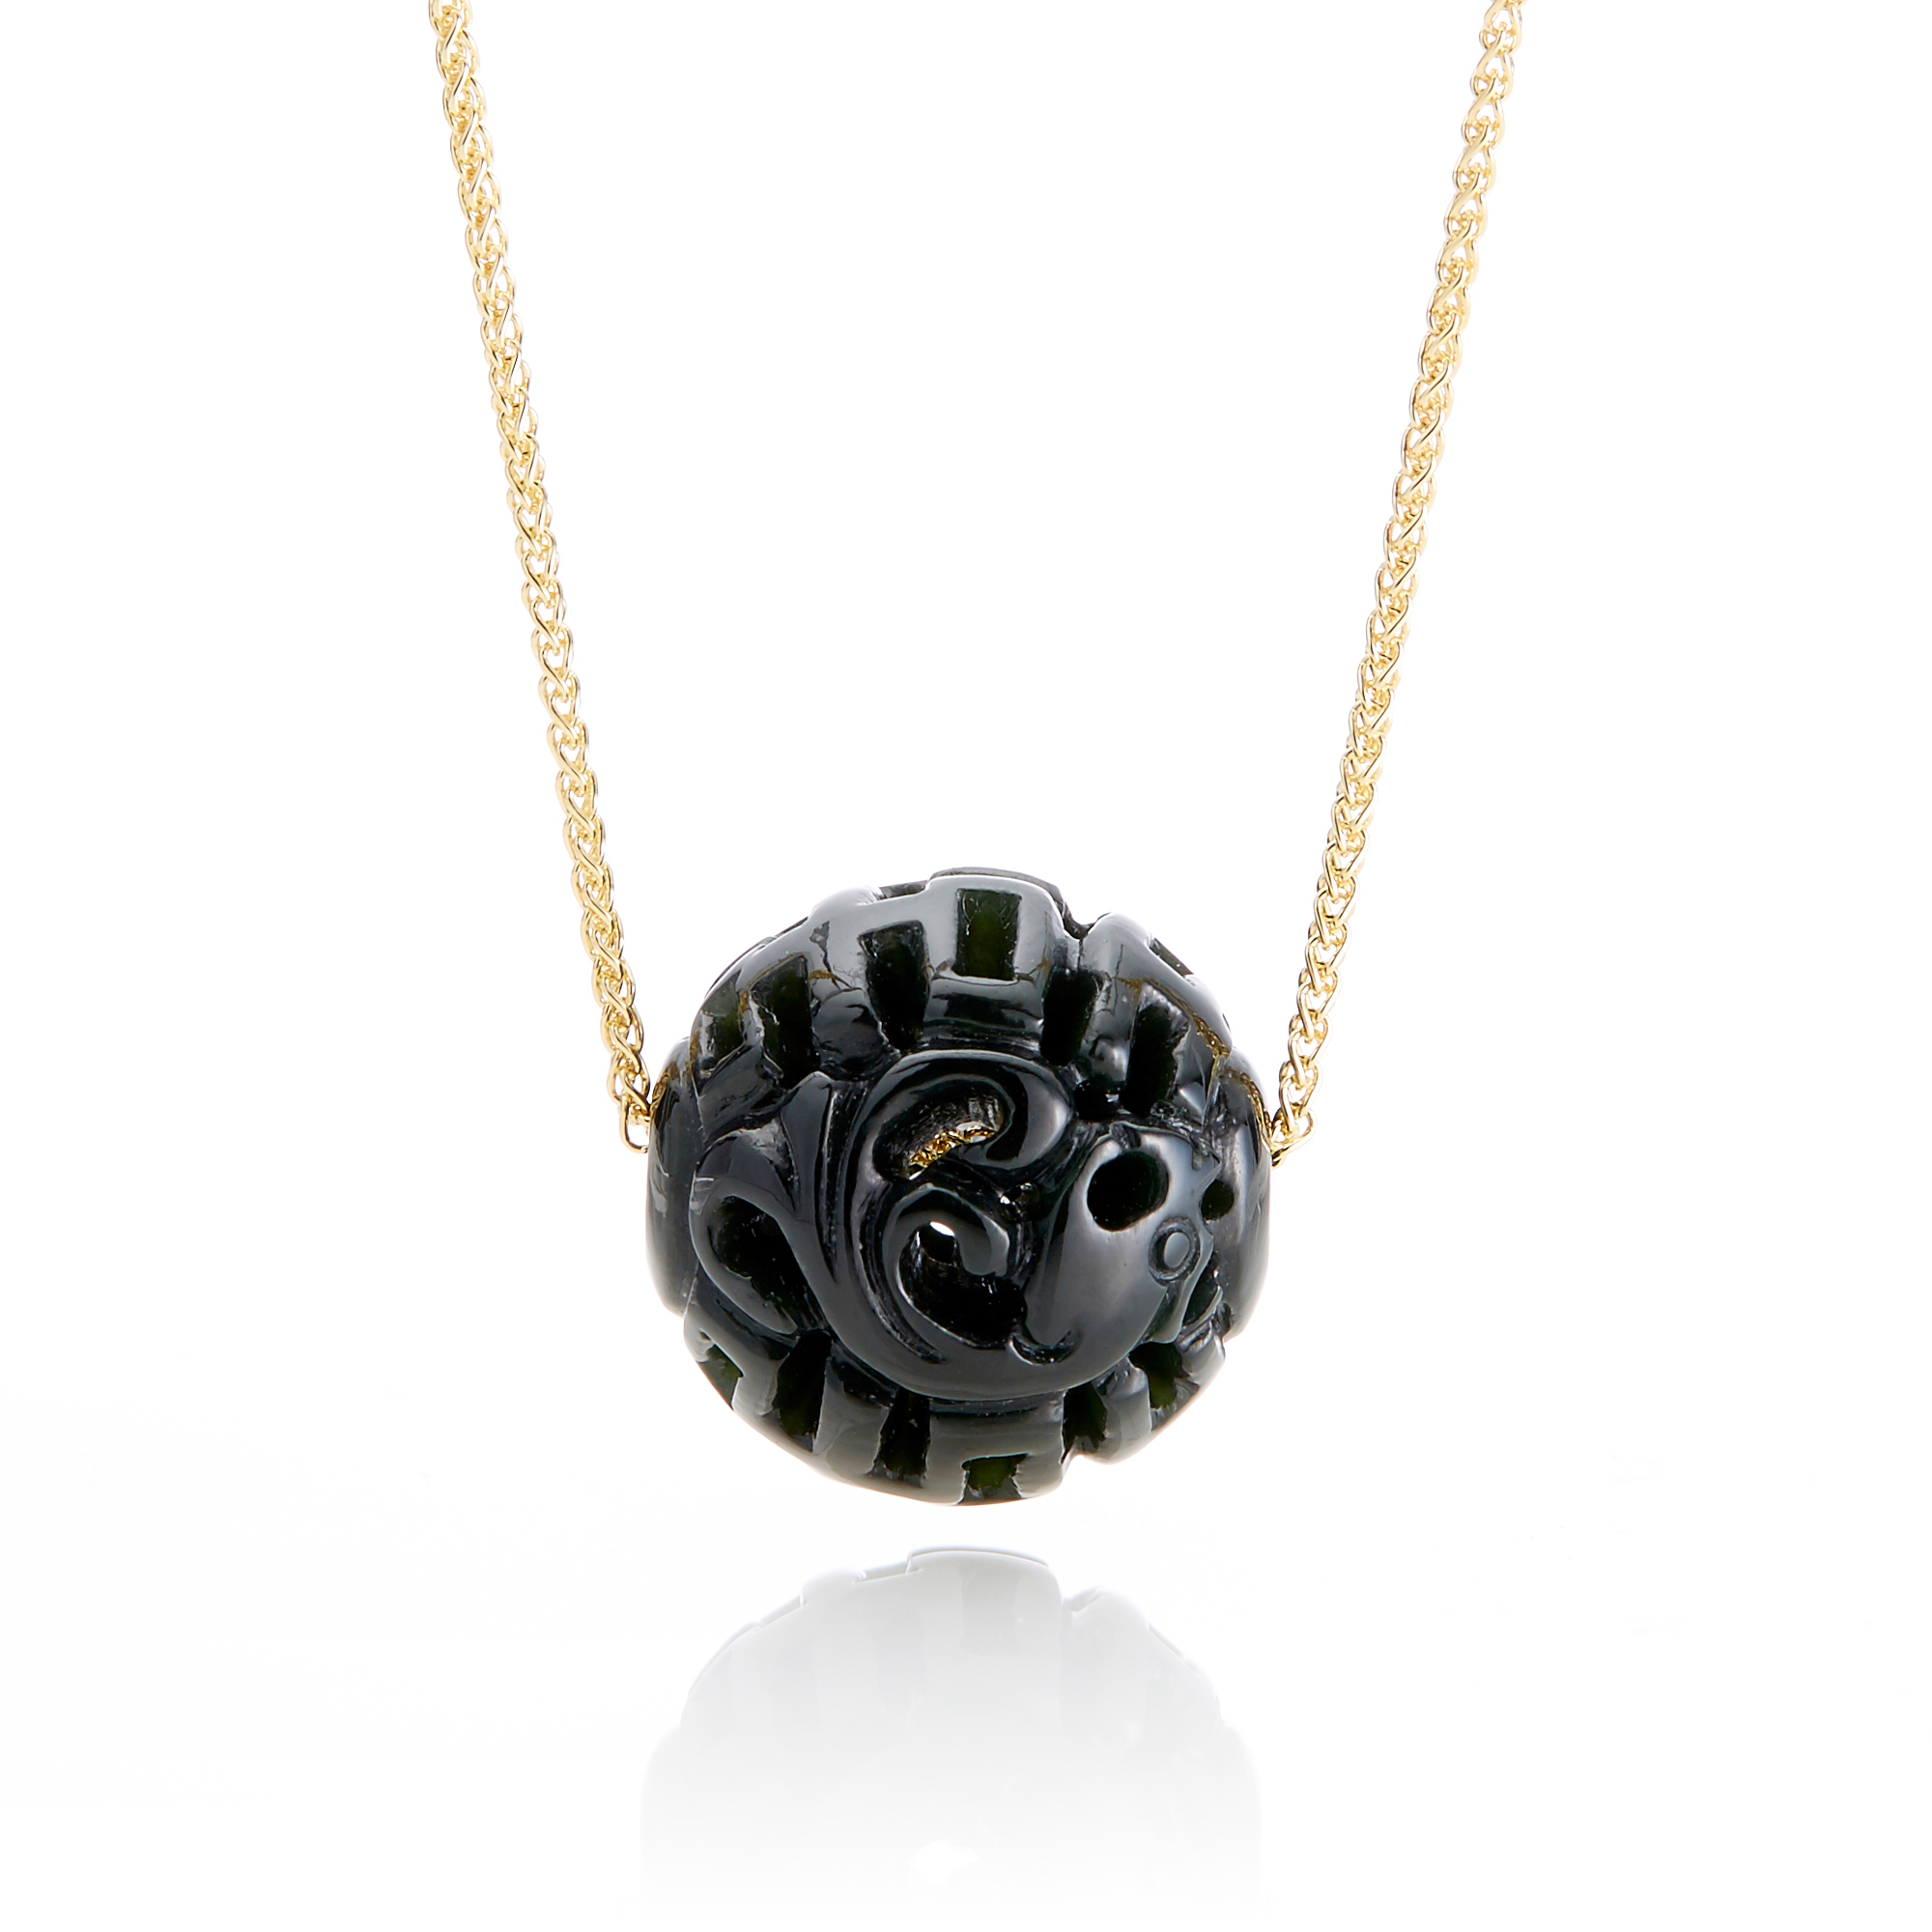 Gump's Black Nephrite Jade Dragon Ball Necklace